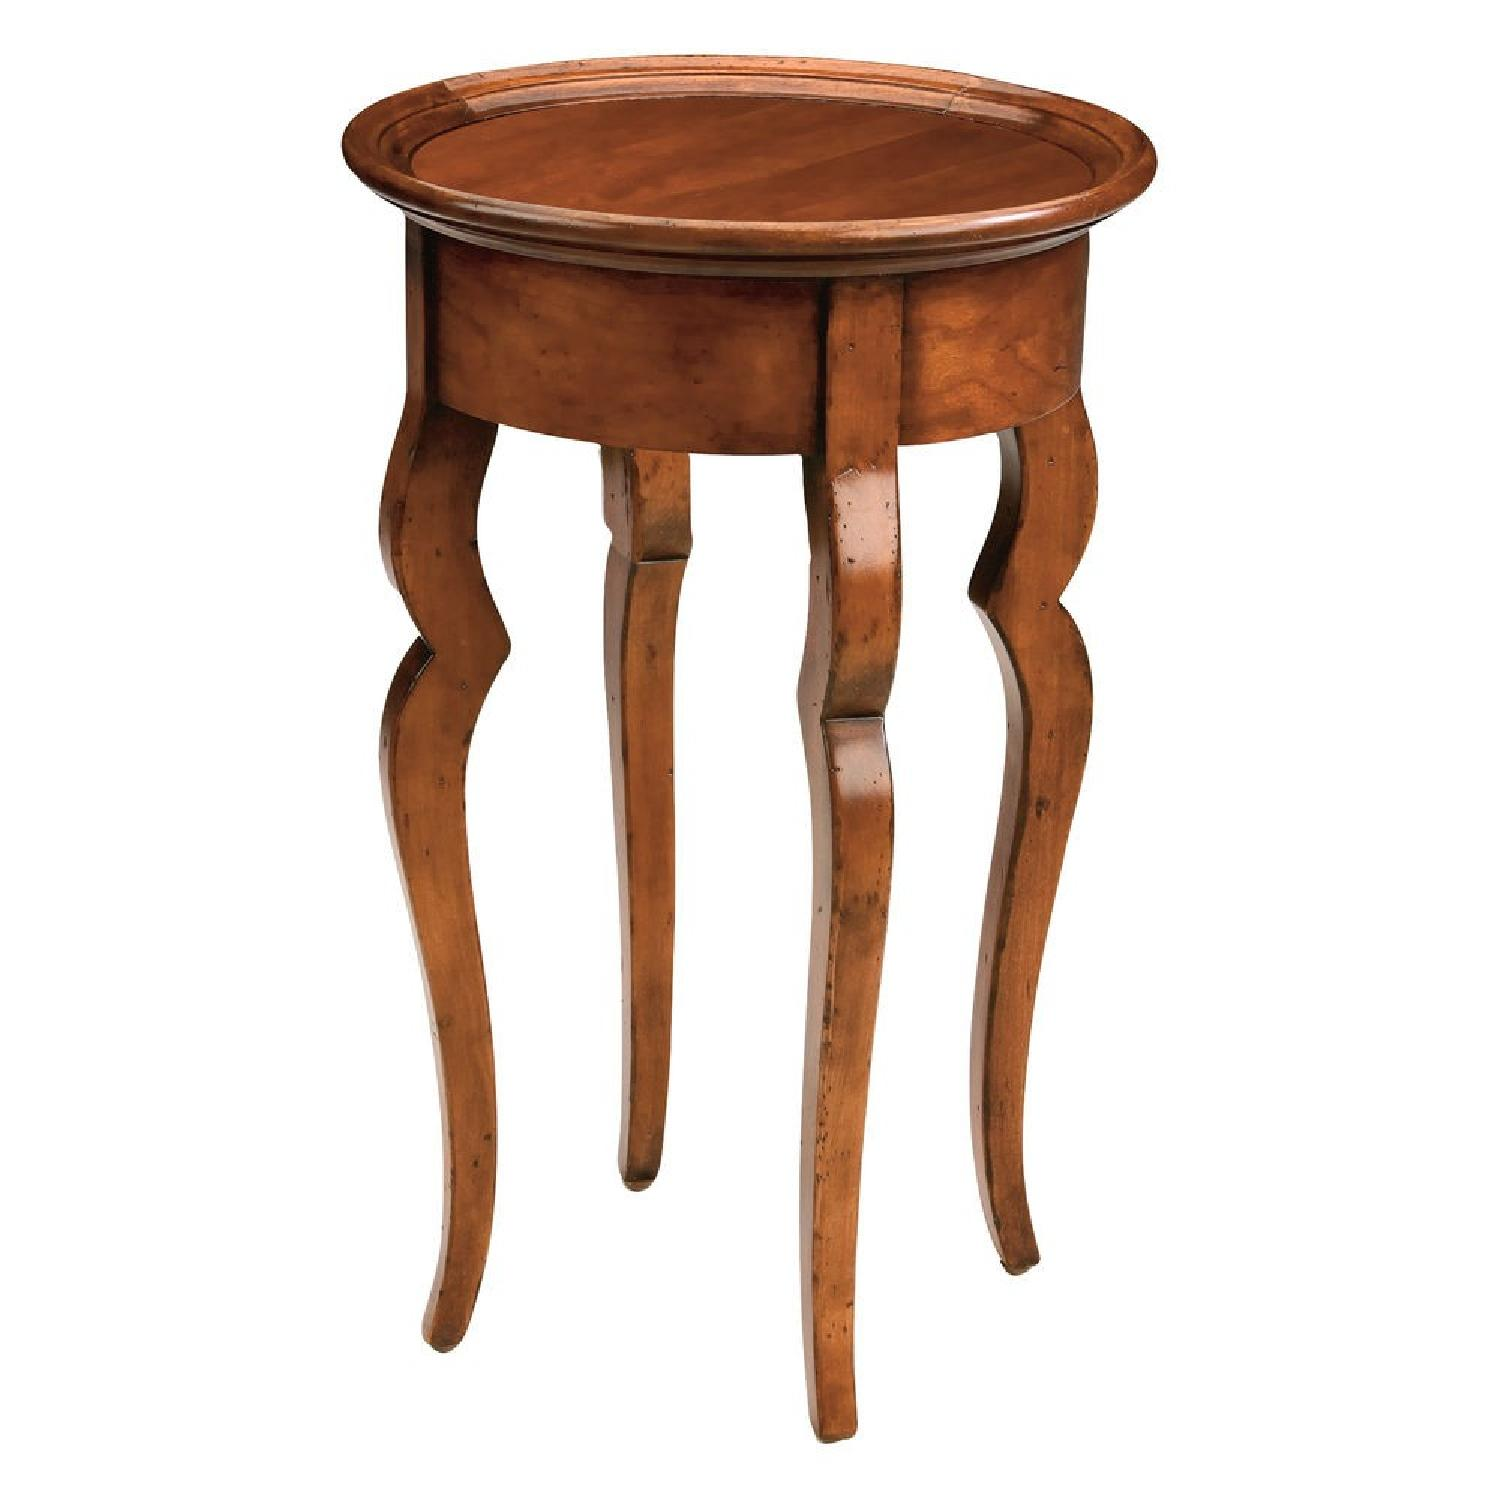 Ethan Allen Alisha Cherry Wood Plant Stand - image-0